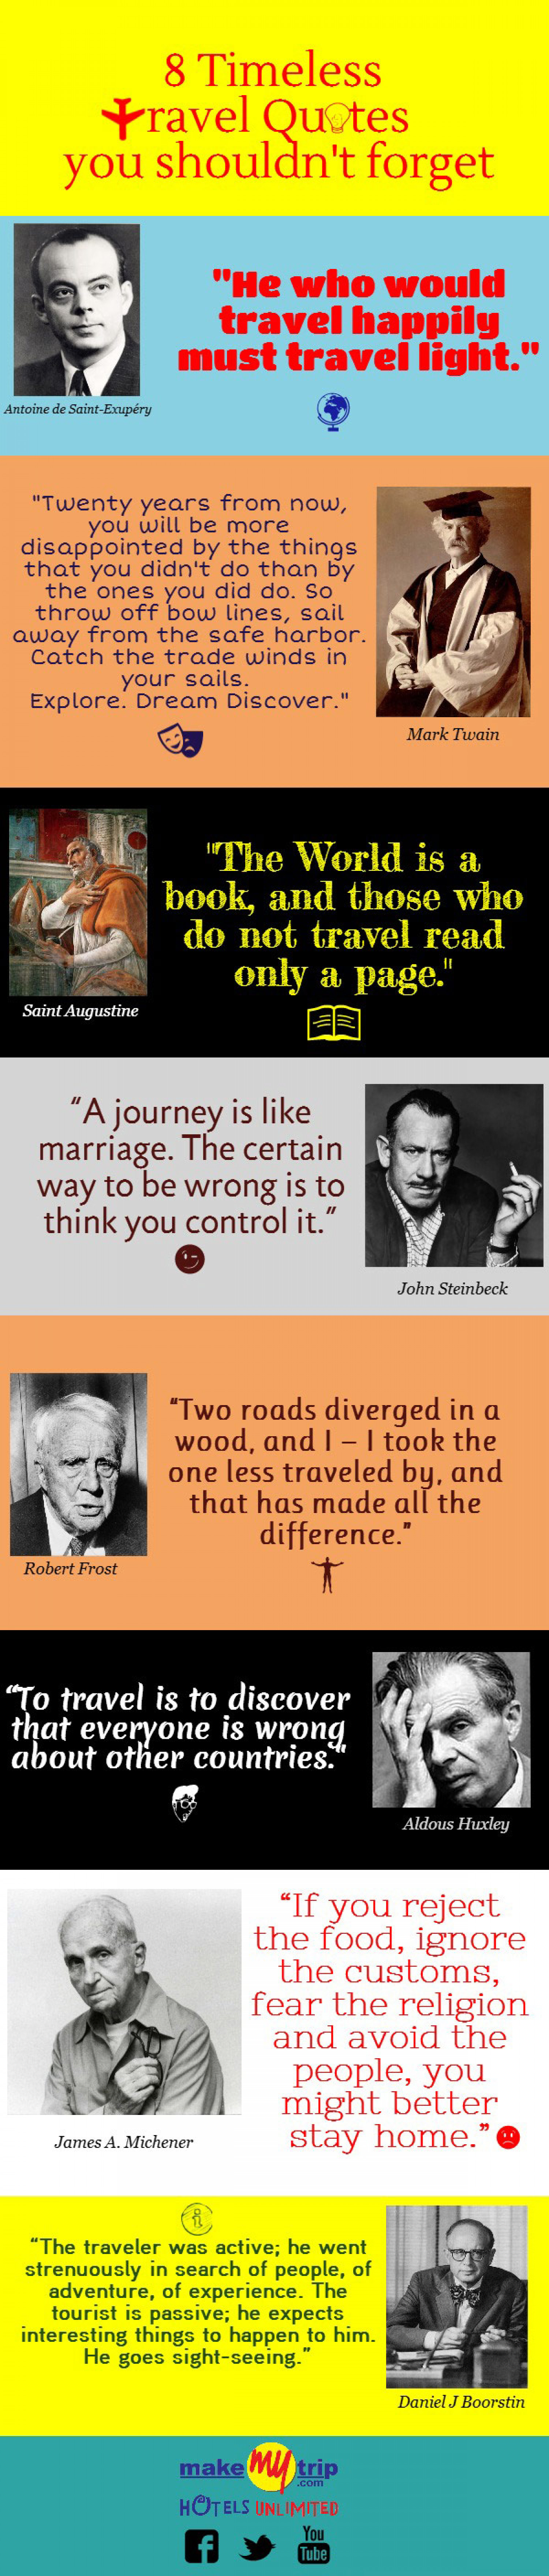 8 Timeless Travel Quotes You Shouldn't Forget Infographic